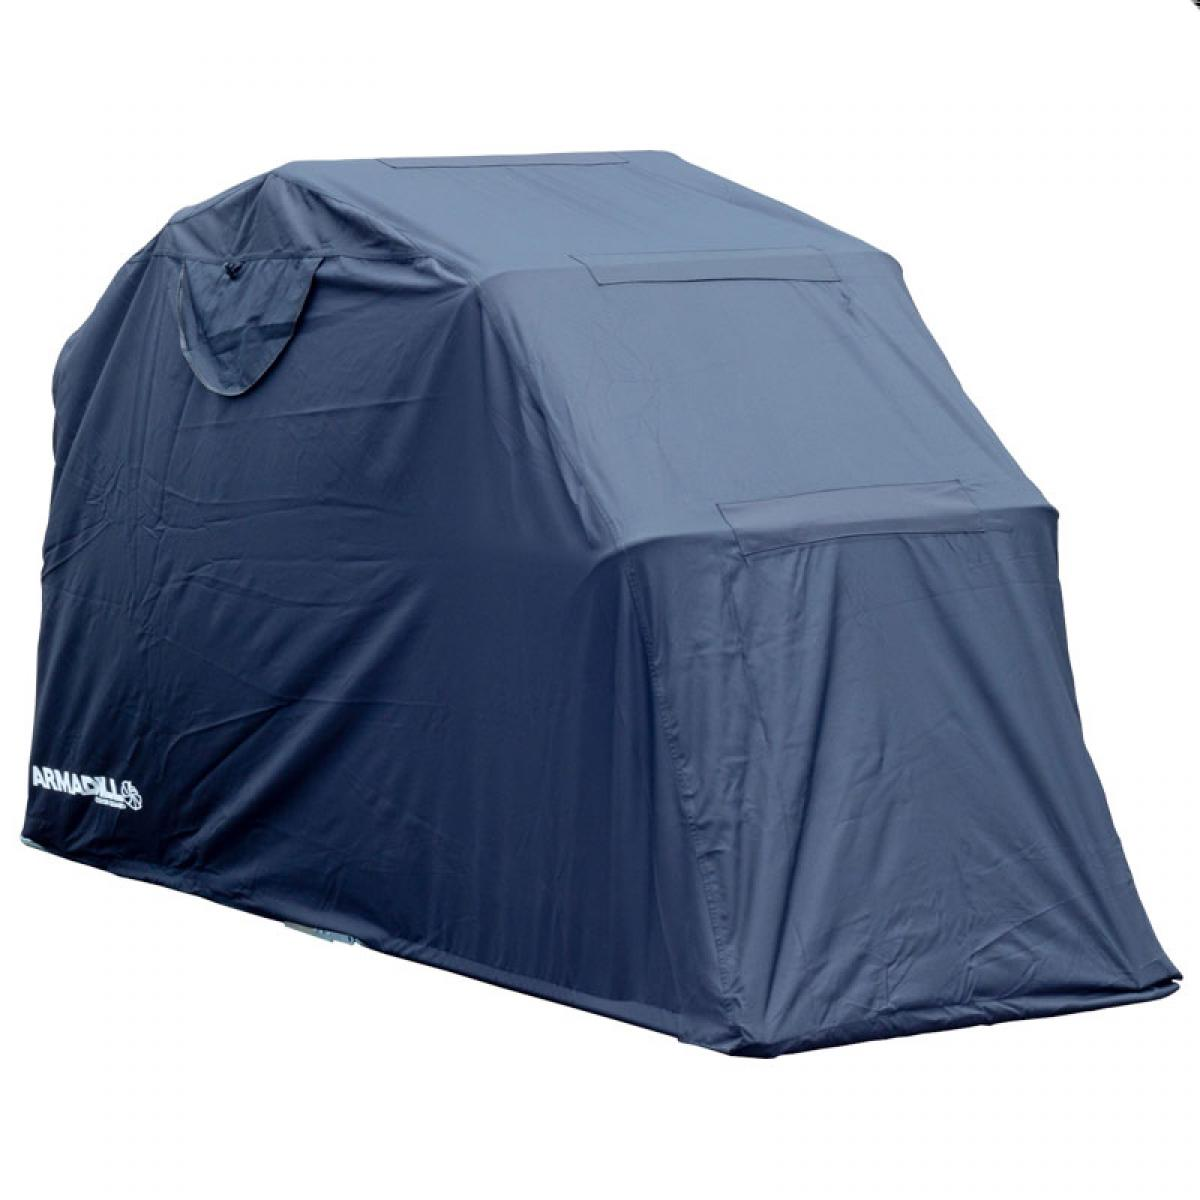 Armadillo motorcycle scooter folding design garage shelter waterproof 600 d ebay - Motorcycle foldable garage tent cover ...